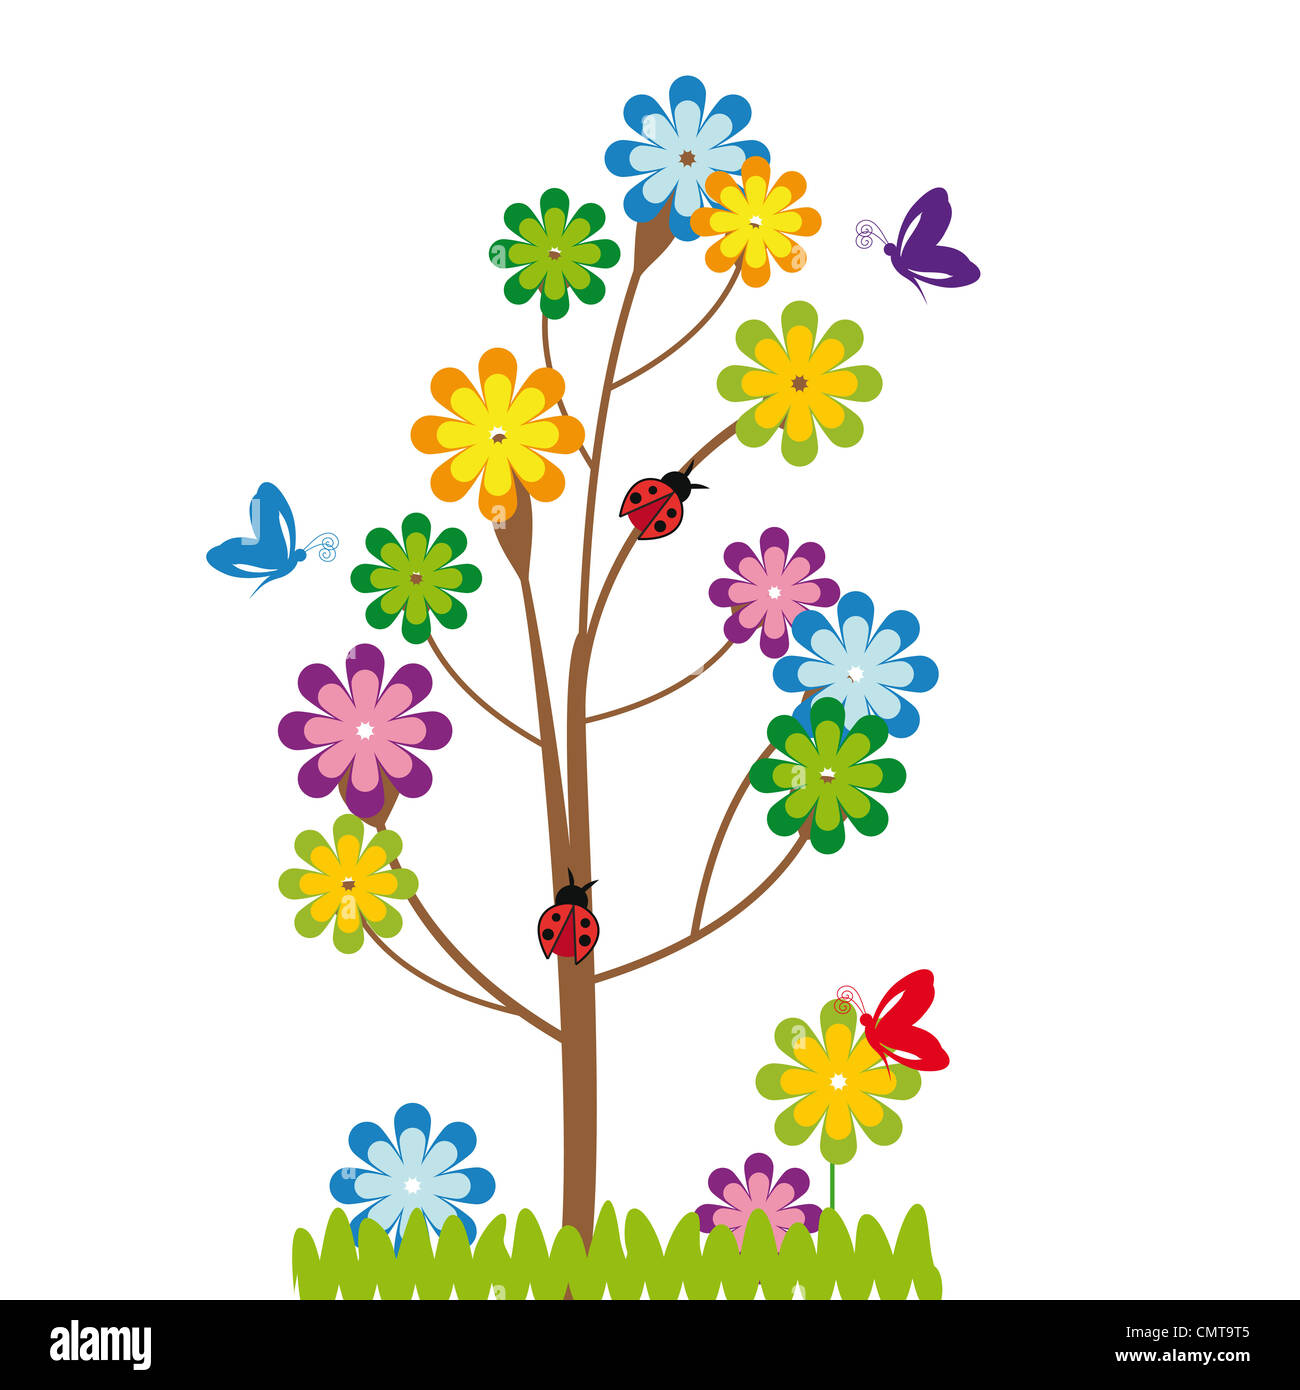 Snow White Wall Stickers Cute Kids Cartoon With Tree And Flowers Stock Photo